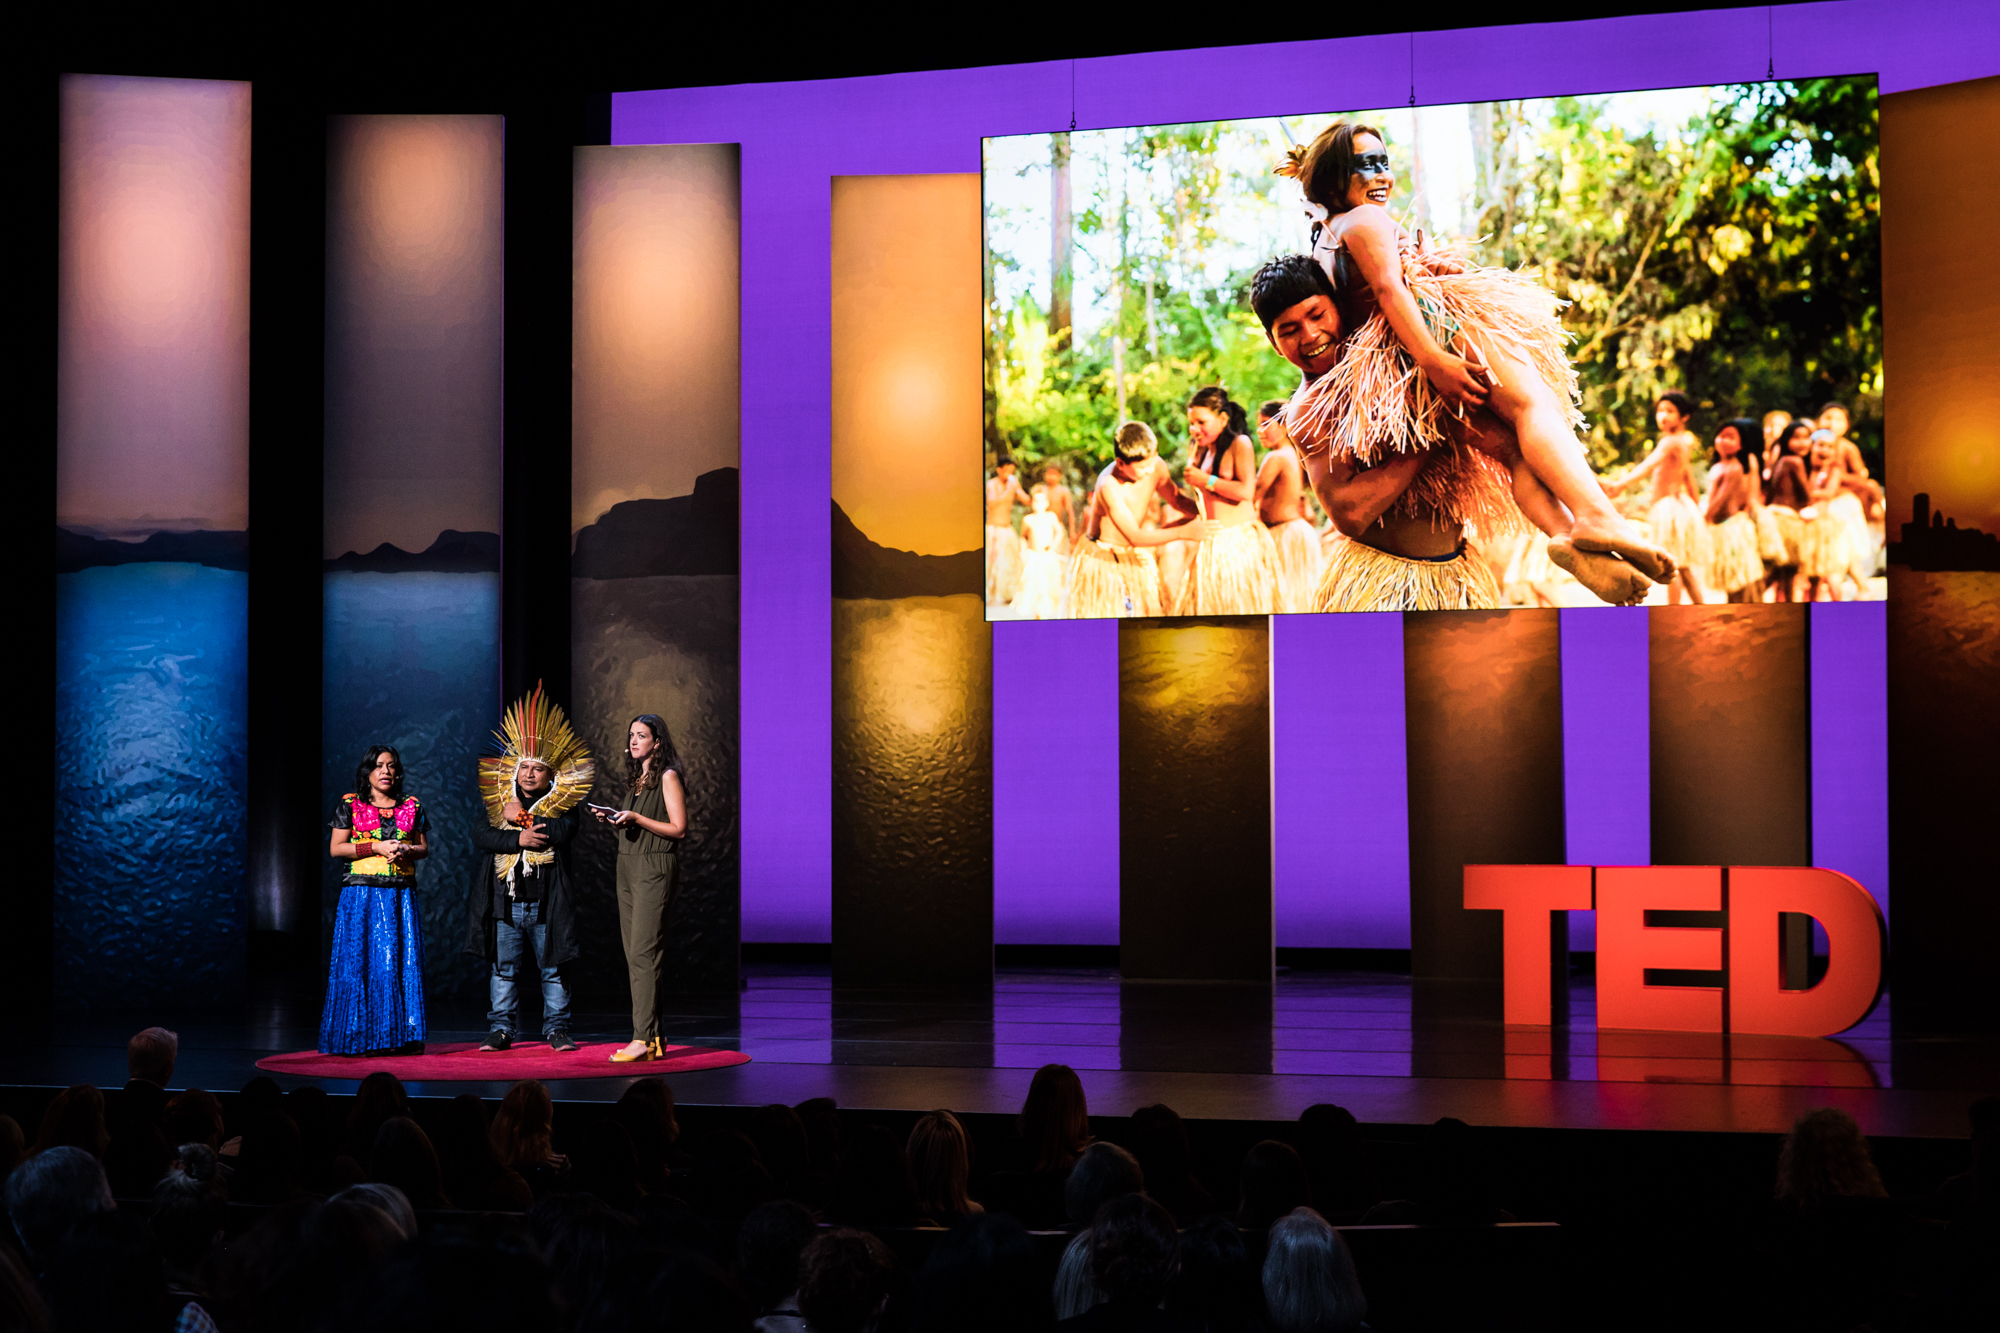 Chief Tashka and Laura Soriano Yawanawa at TEDWomen 2016 - It's About Time, October 26-28, 2016, Yerba Buena Centre for the Arts, San Francisco, California. Photo: Marla Aufmuth / TED